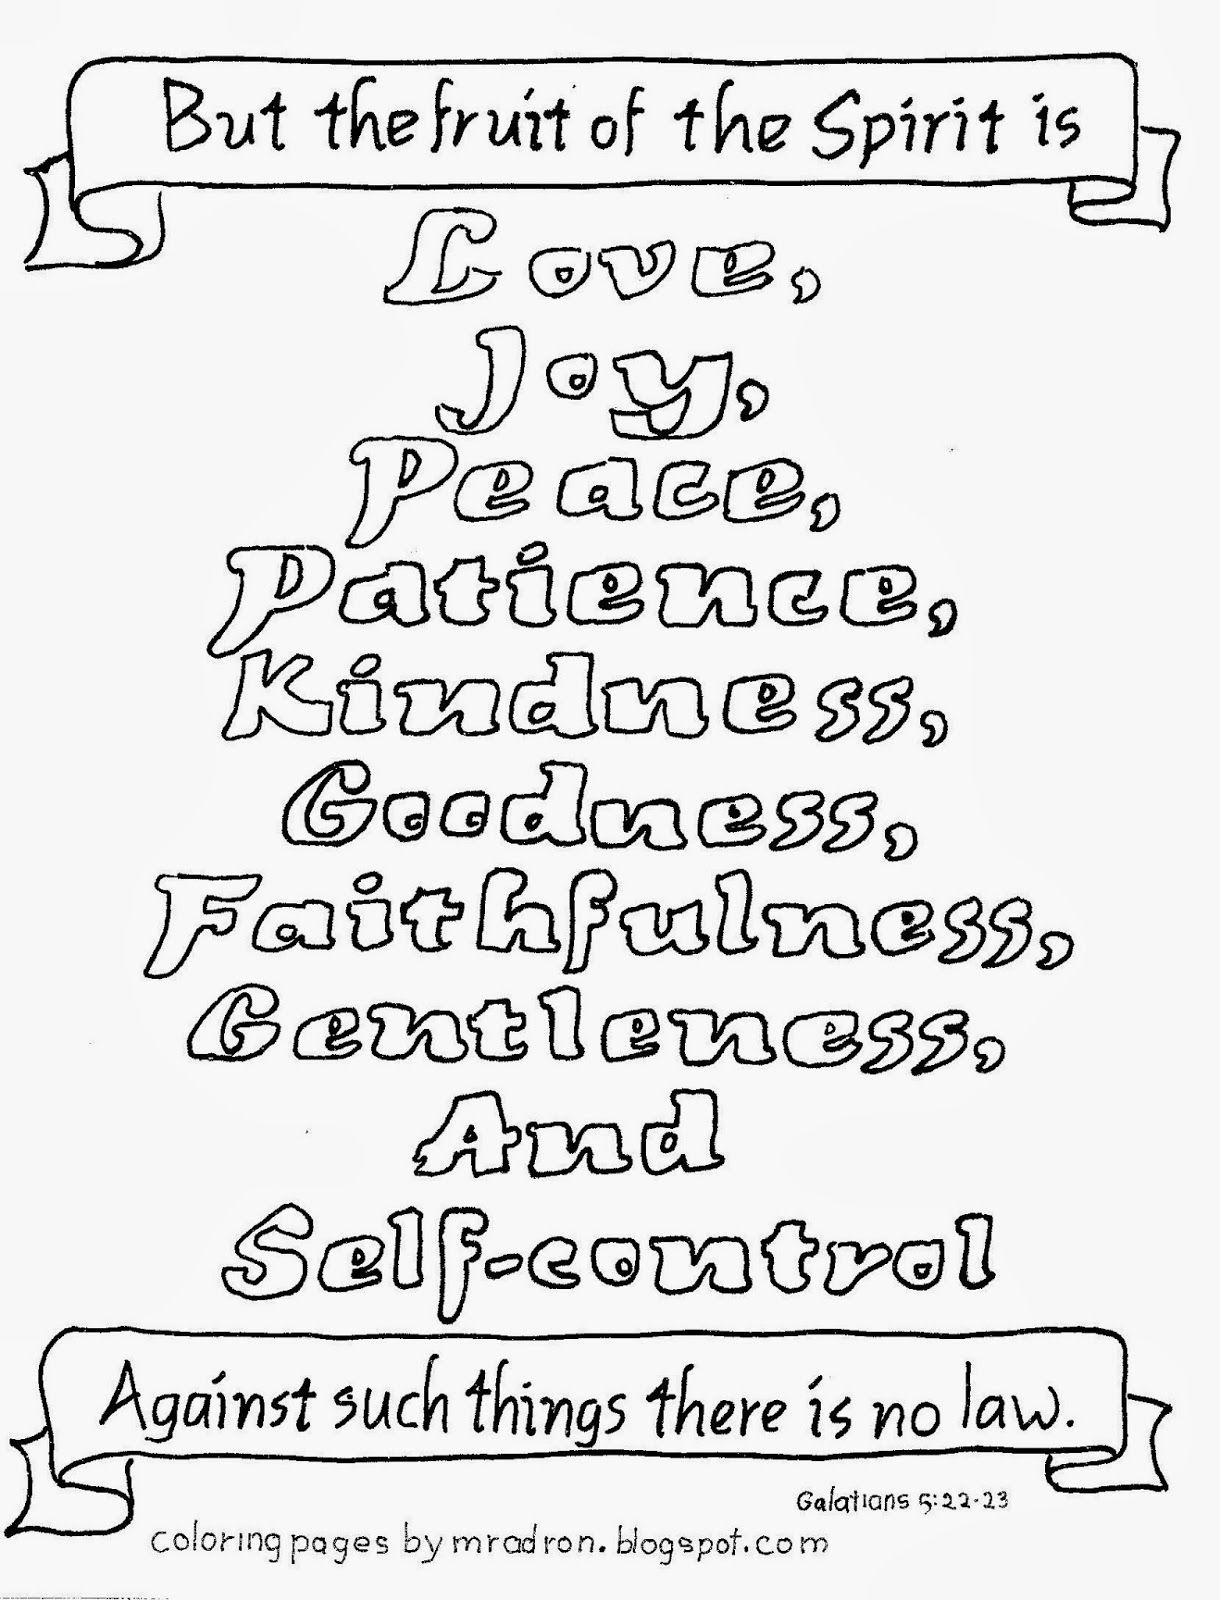 Free Fruit Of The Spirit Coloring Page Galatians 6 22 23